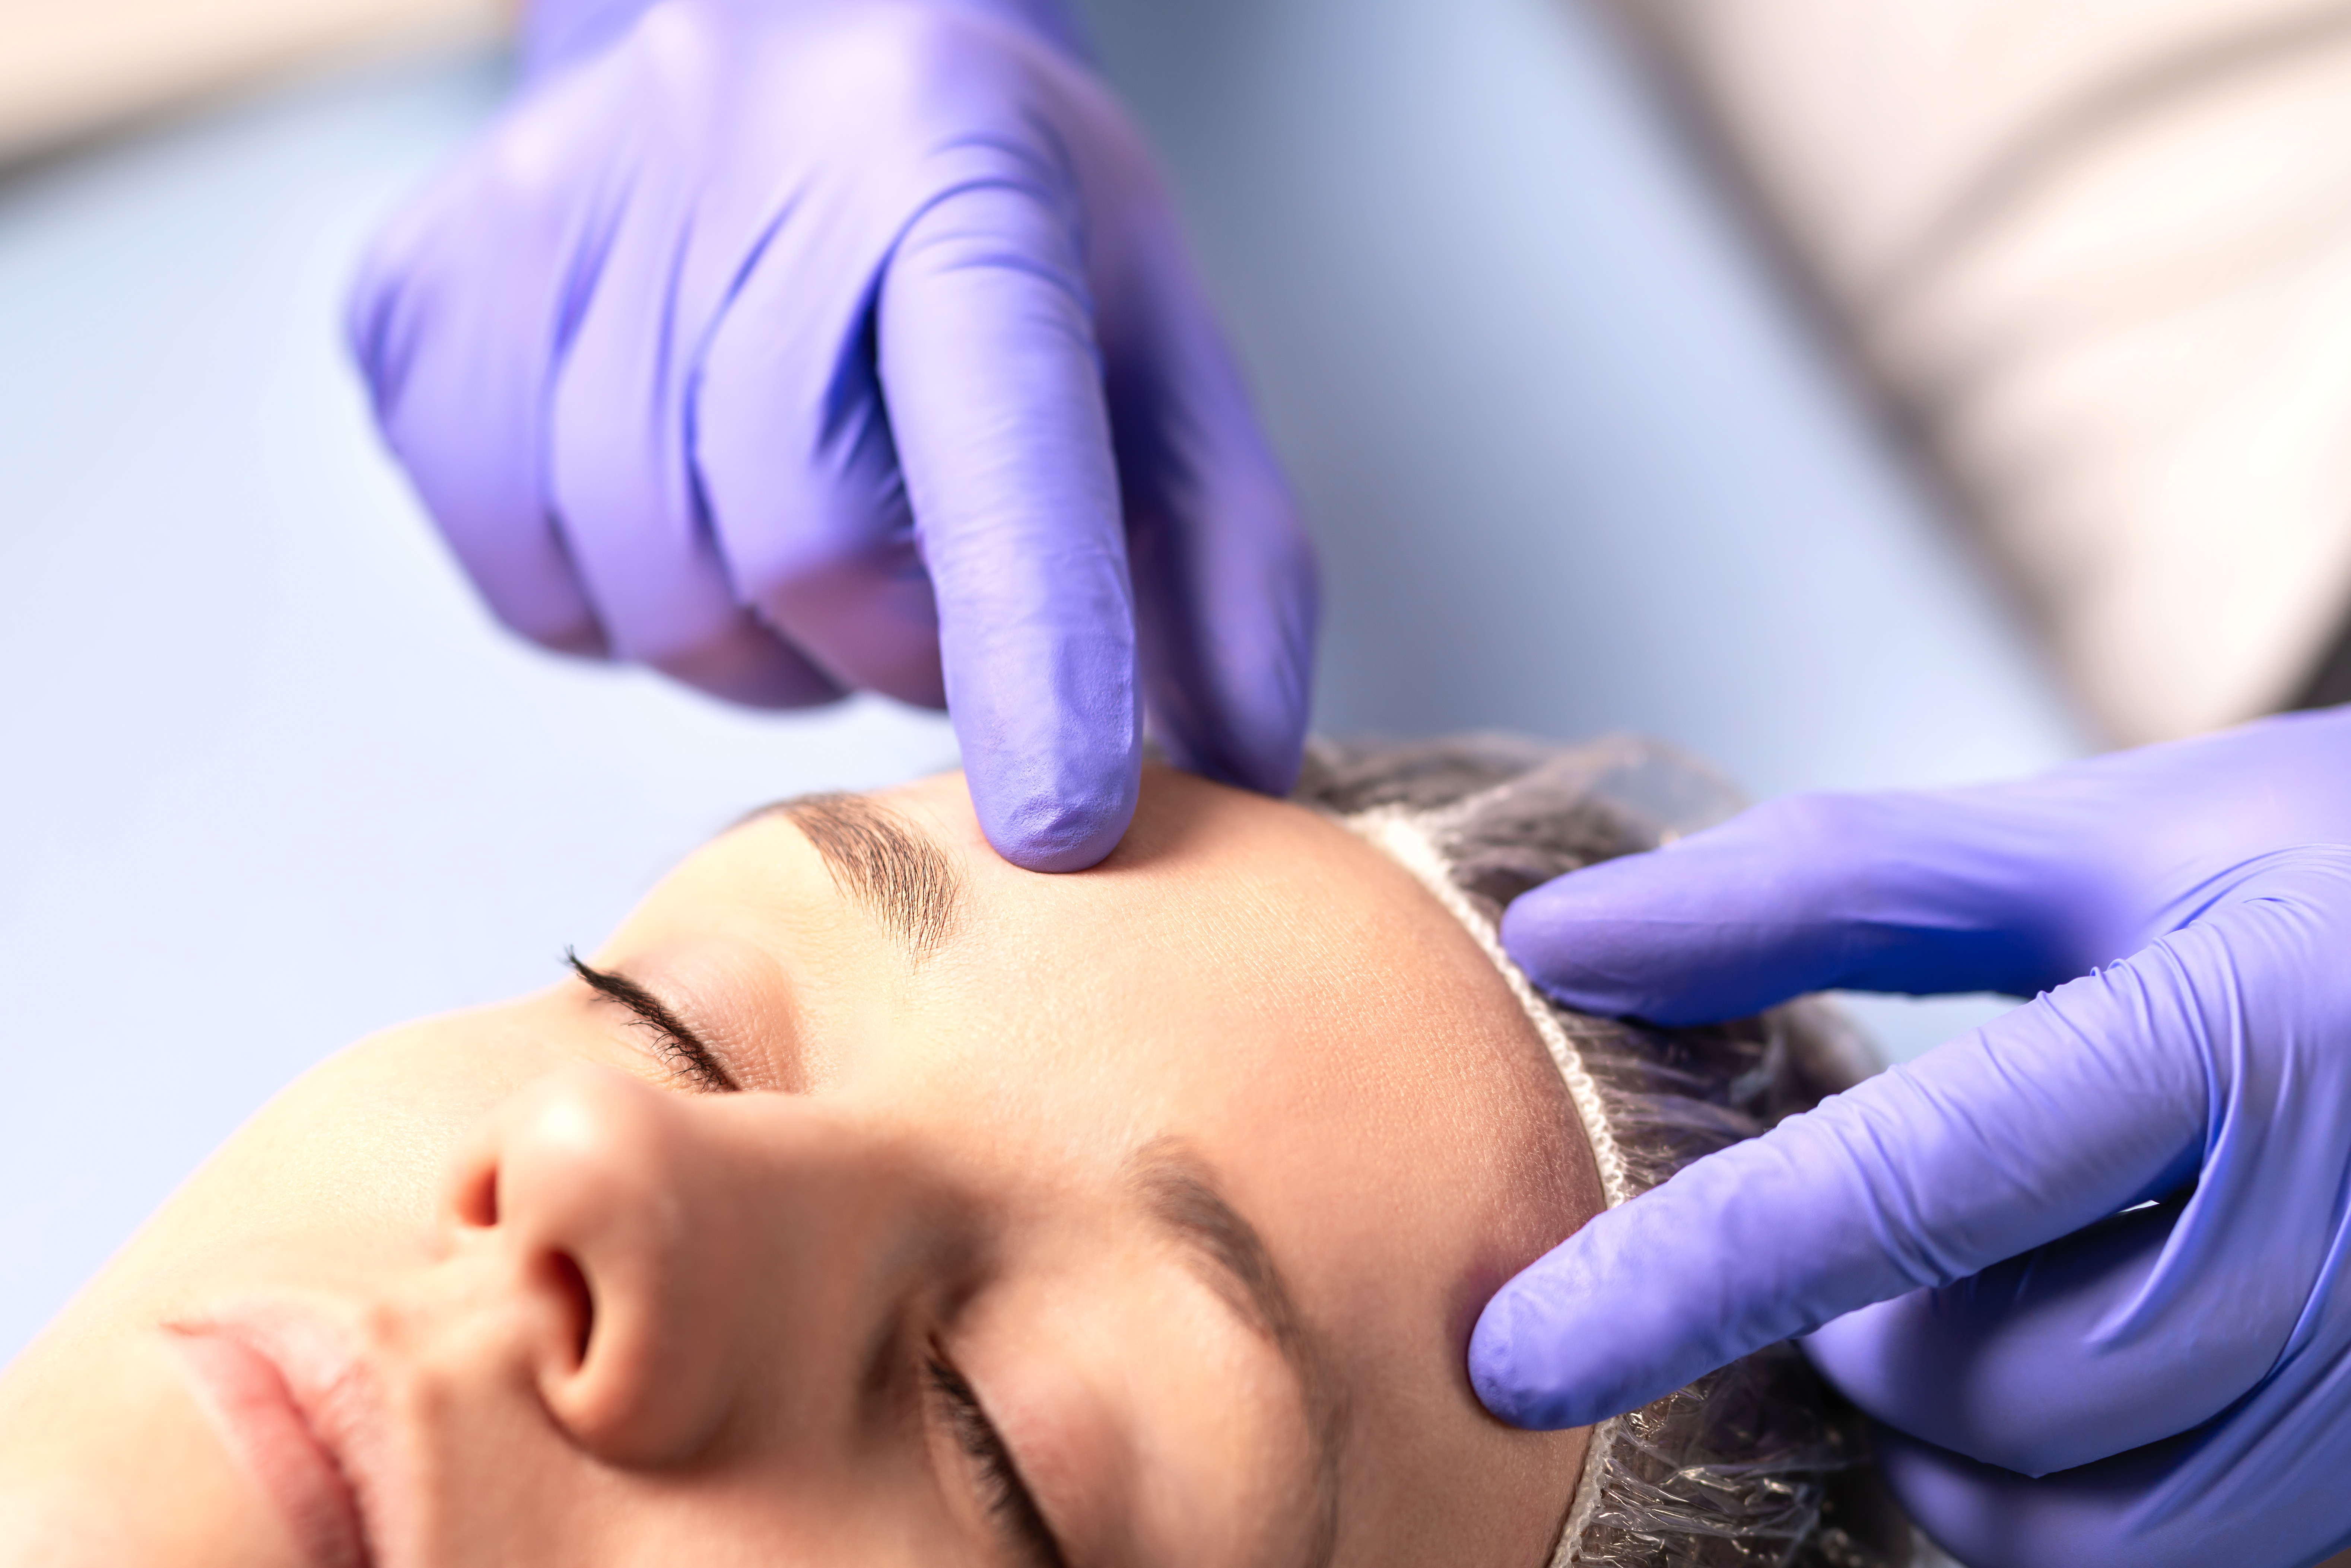 Cosmetologist, plastic surgeon or doctor with patient or customer. Consultation and plan before facial surgery in hospital, skin treatment or facelift in clinic. Professional skincare in beauty salon